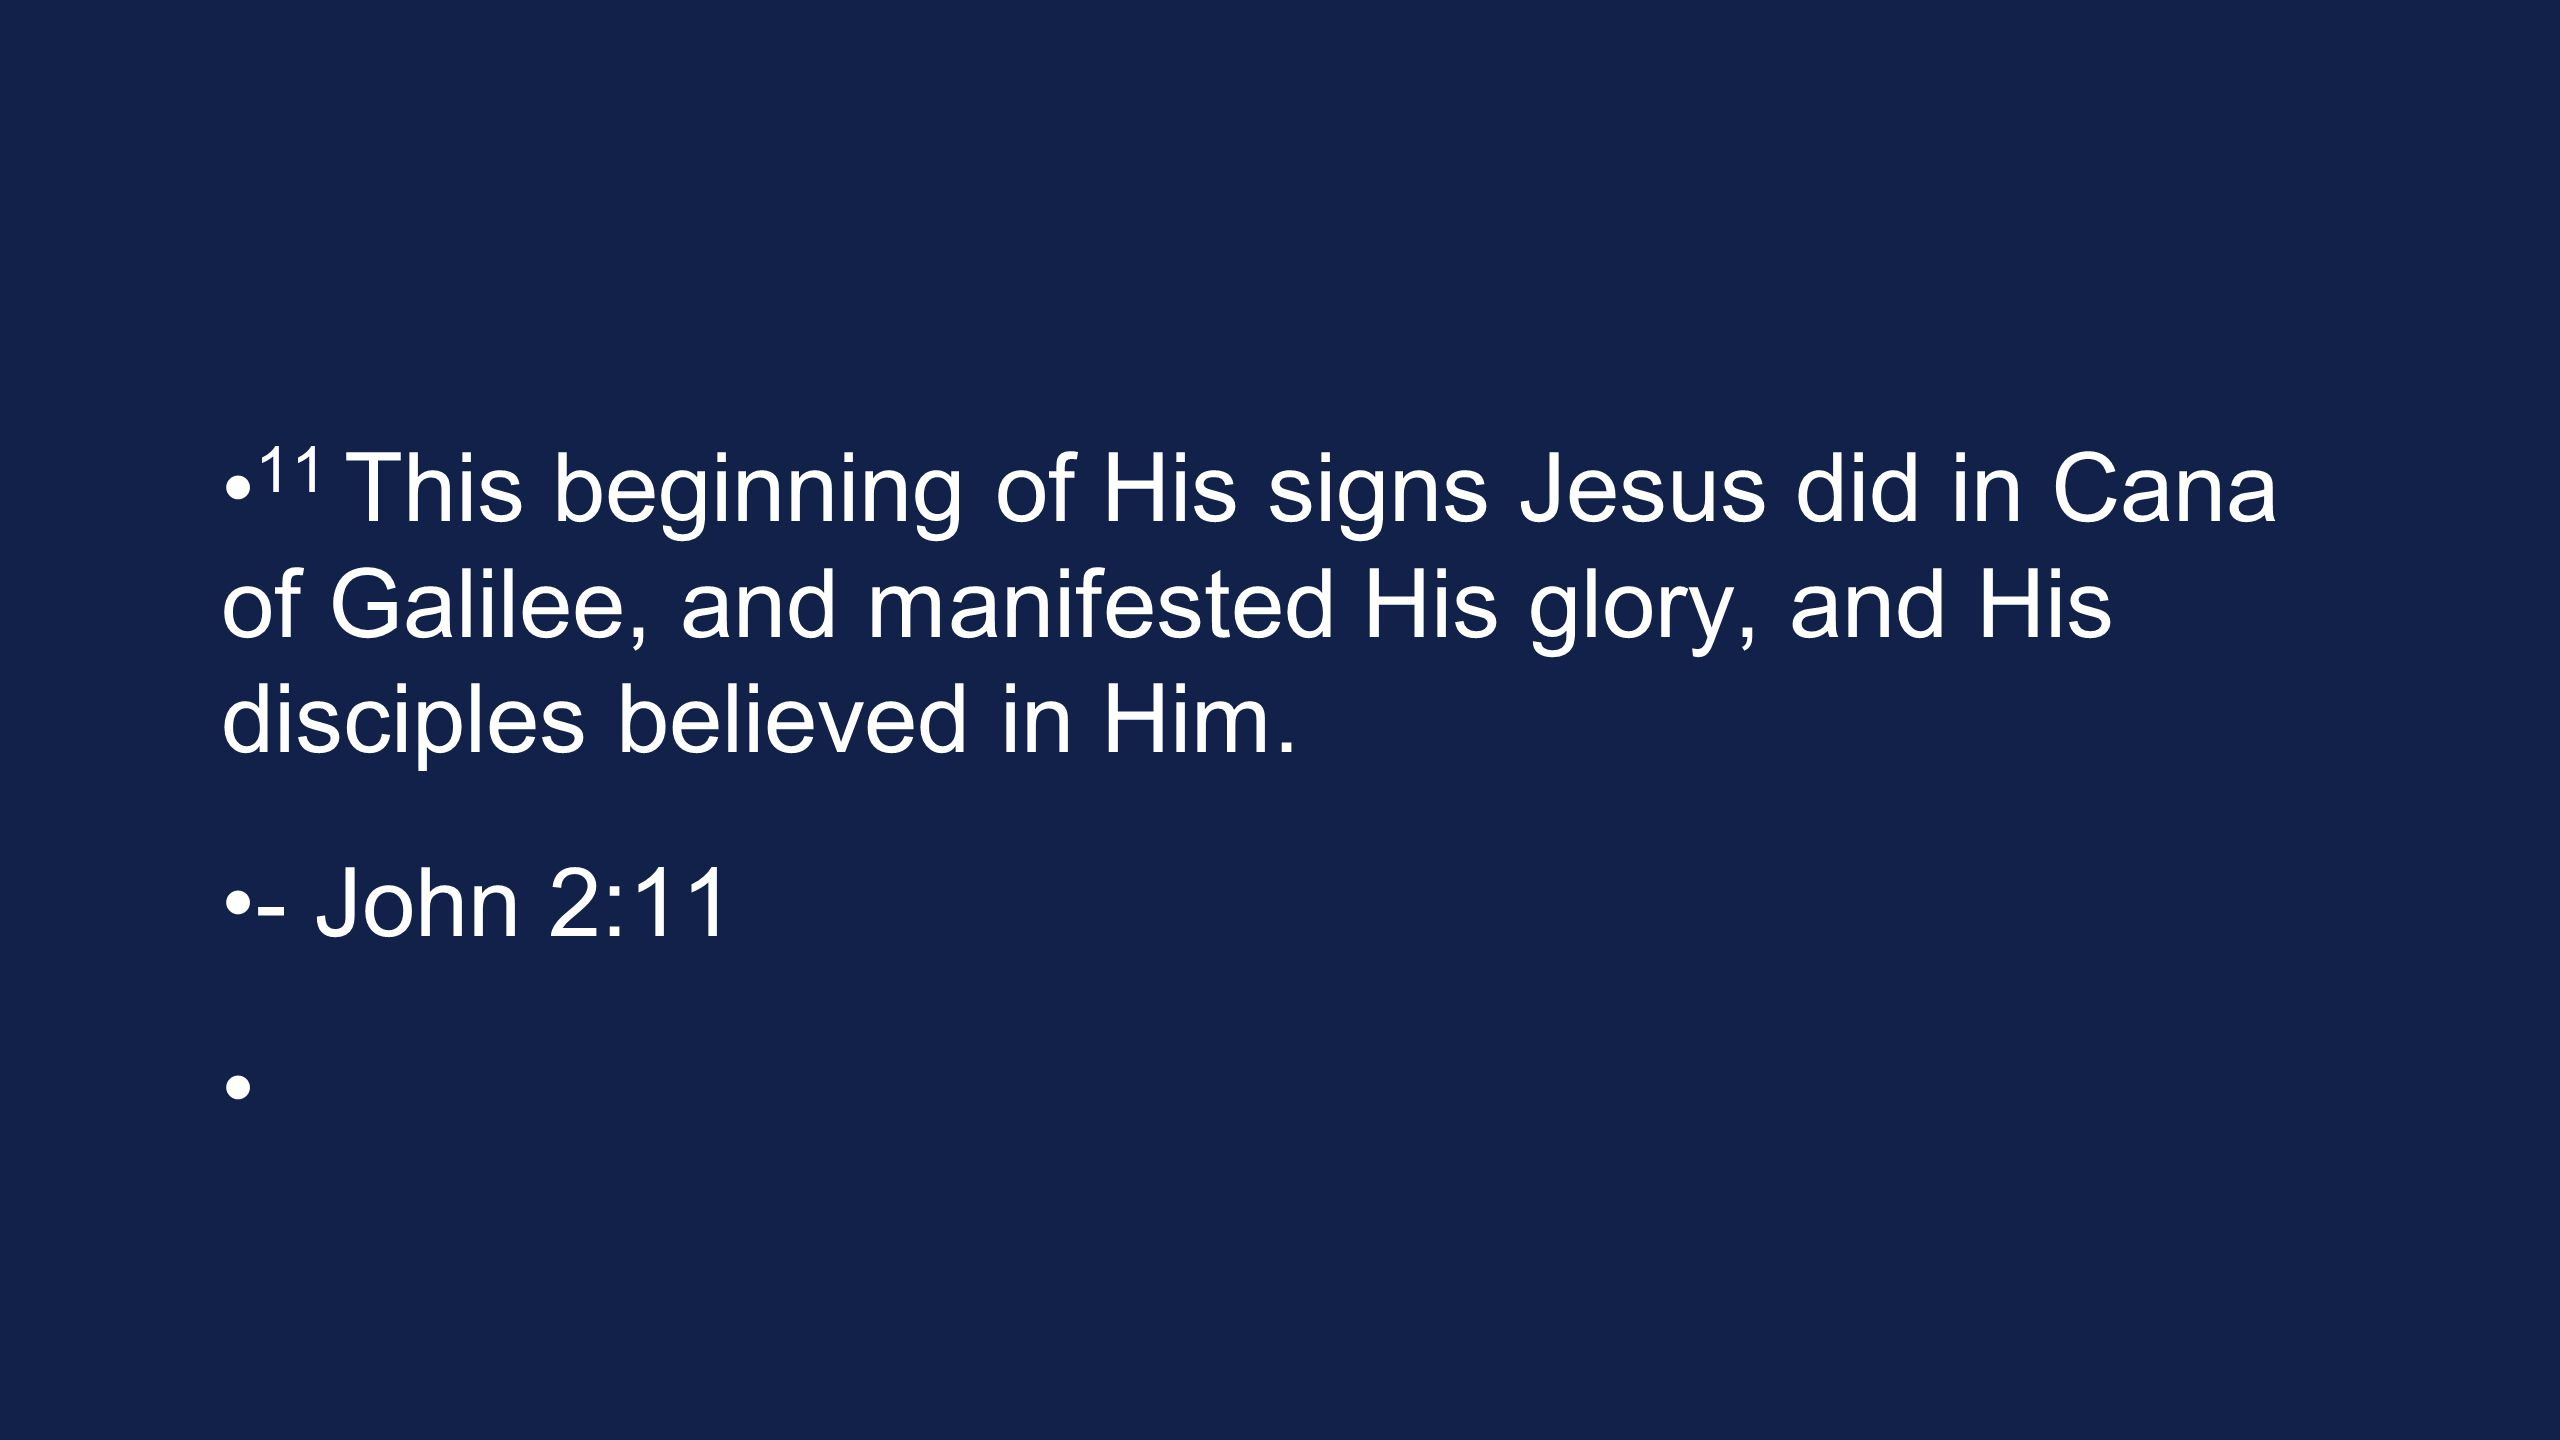 11 This beginning of His signs Jesus did in Cana of Galilee, and manifested His glory, and His disciples believed in Him.